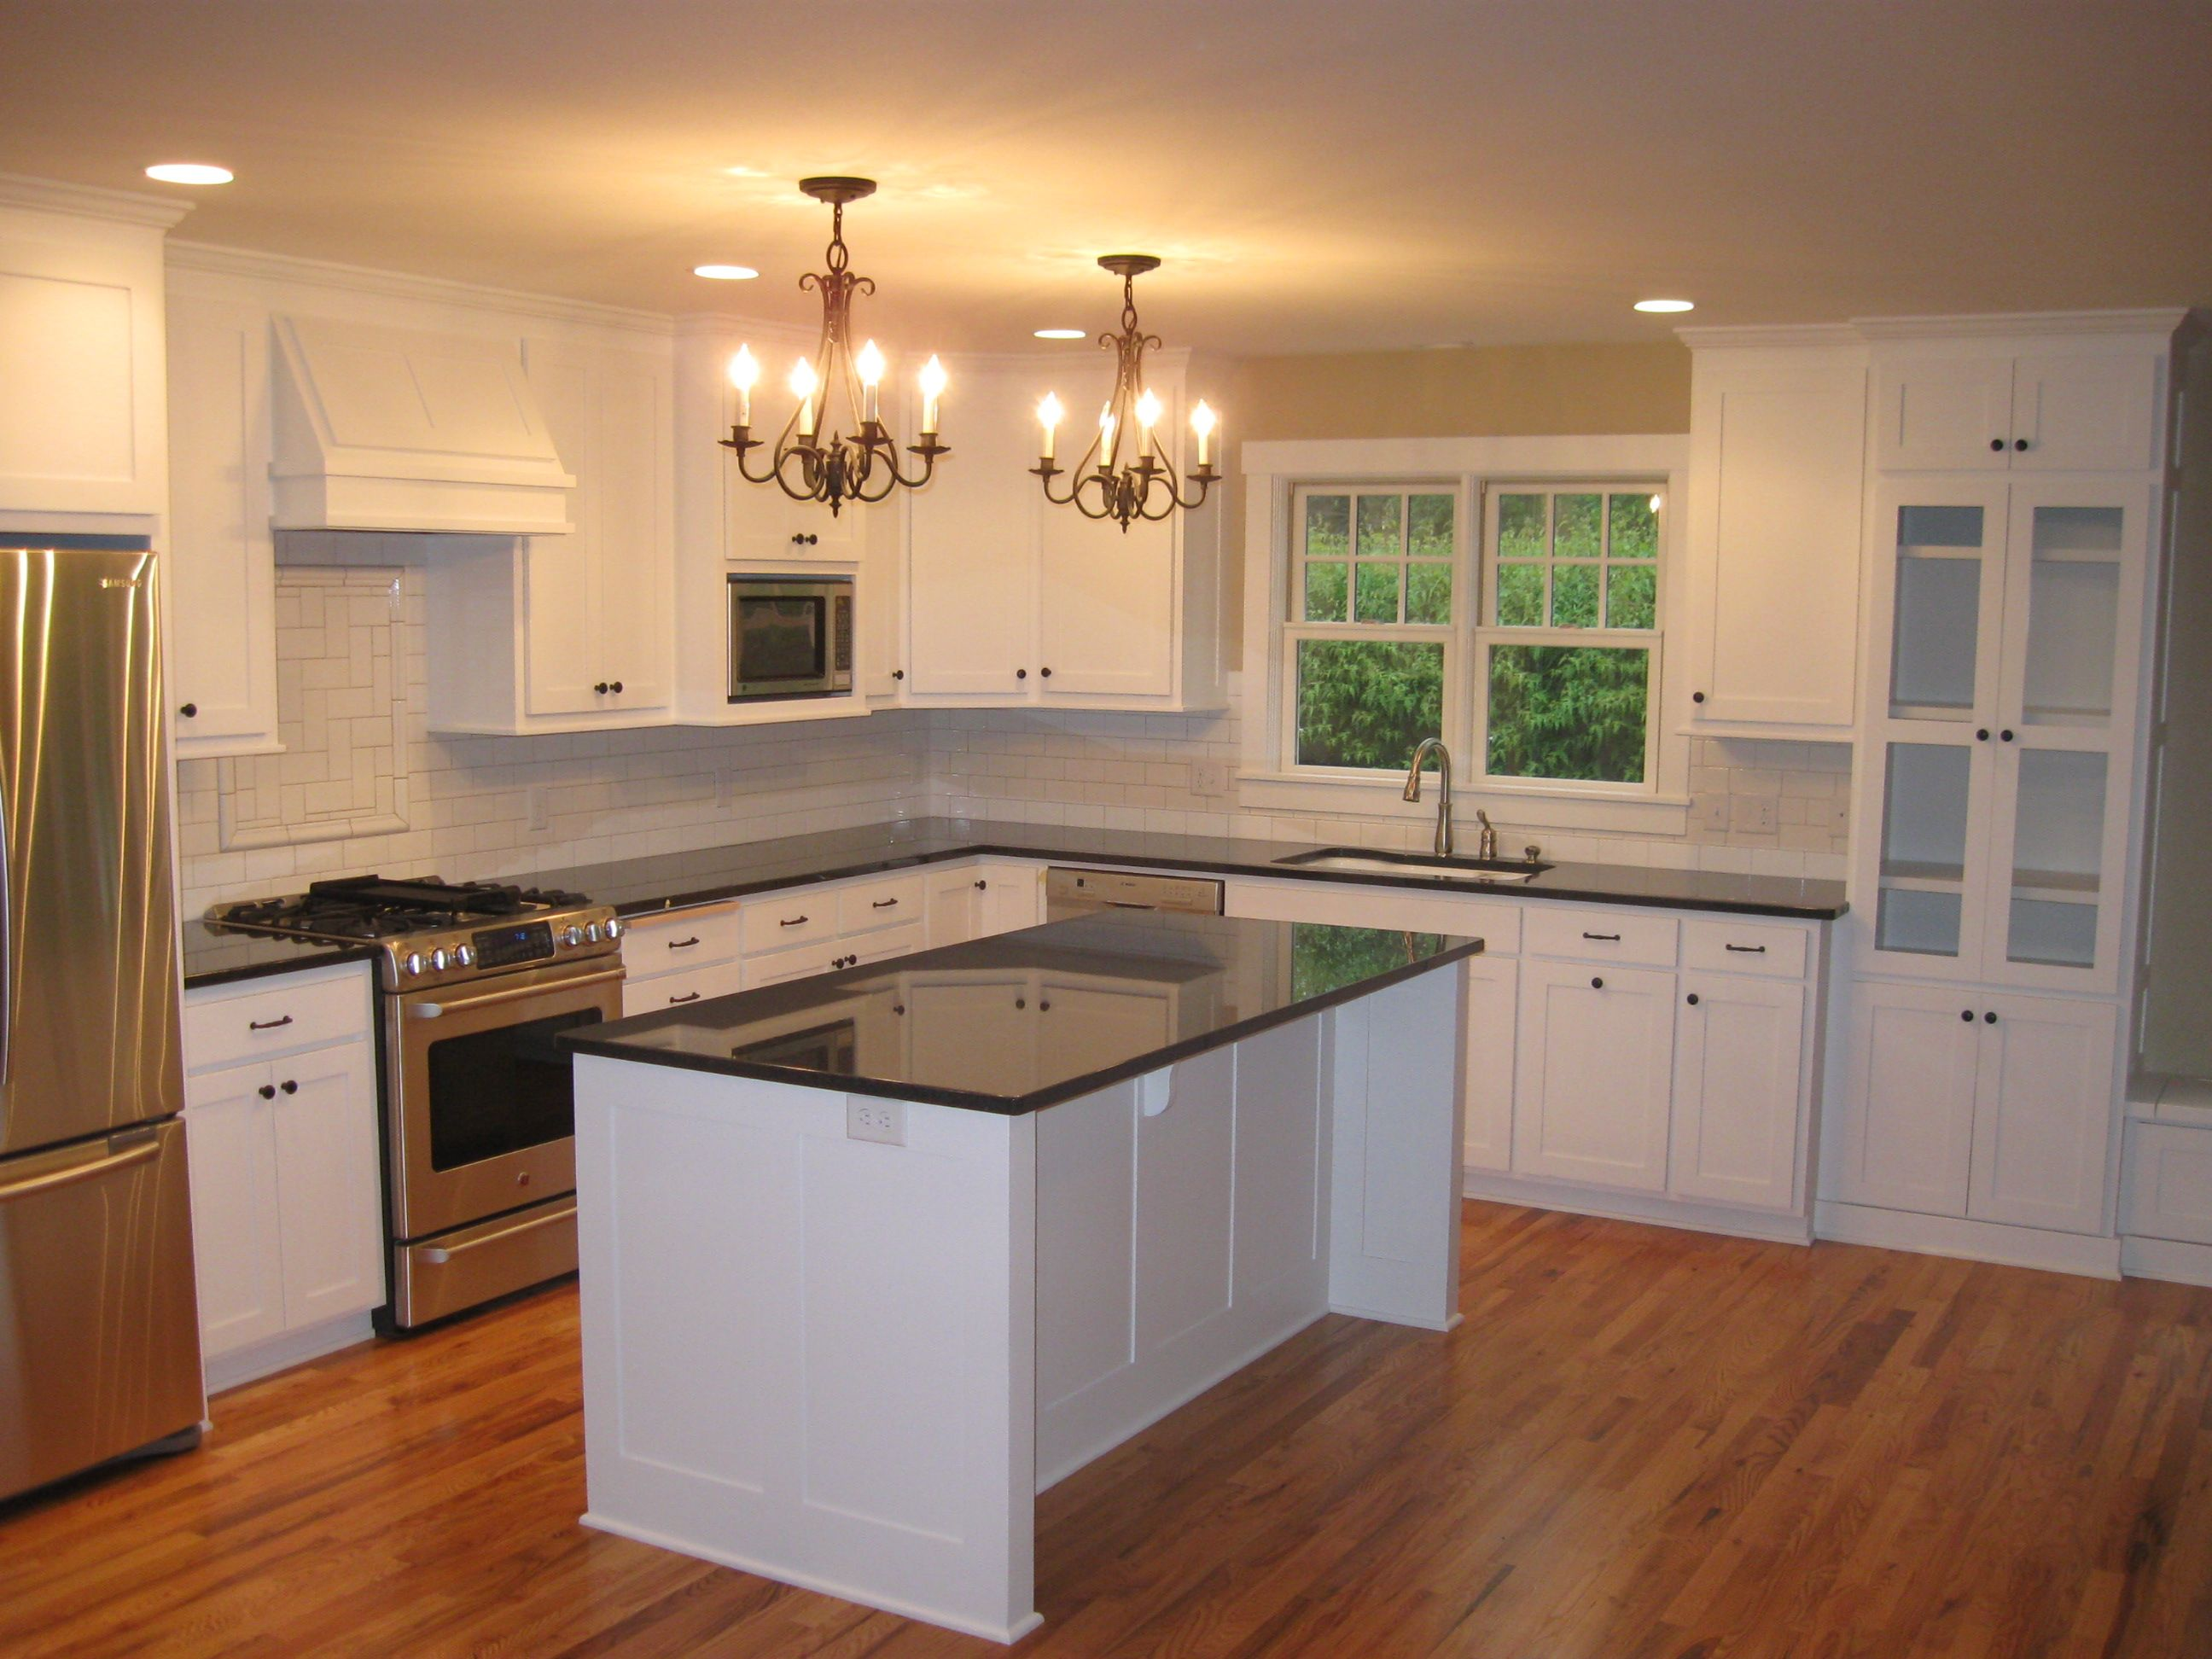 7 Essential Tips For A Perfect Kitchen Kitchen Remodel Layout Galley Kitchen Remodel Kitchen Remodel